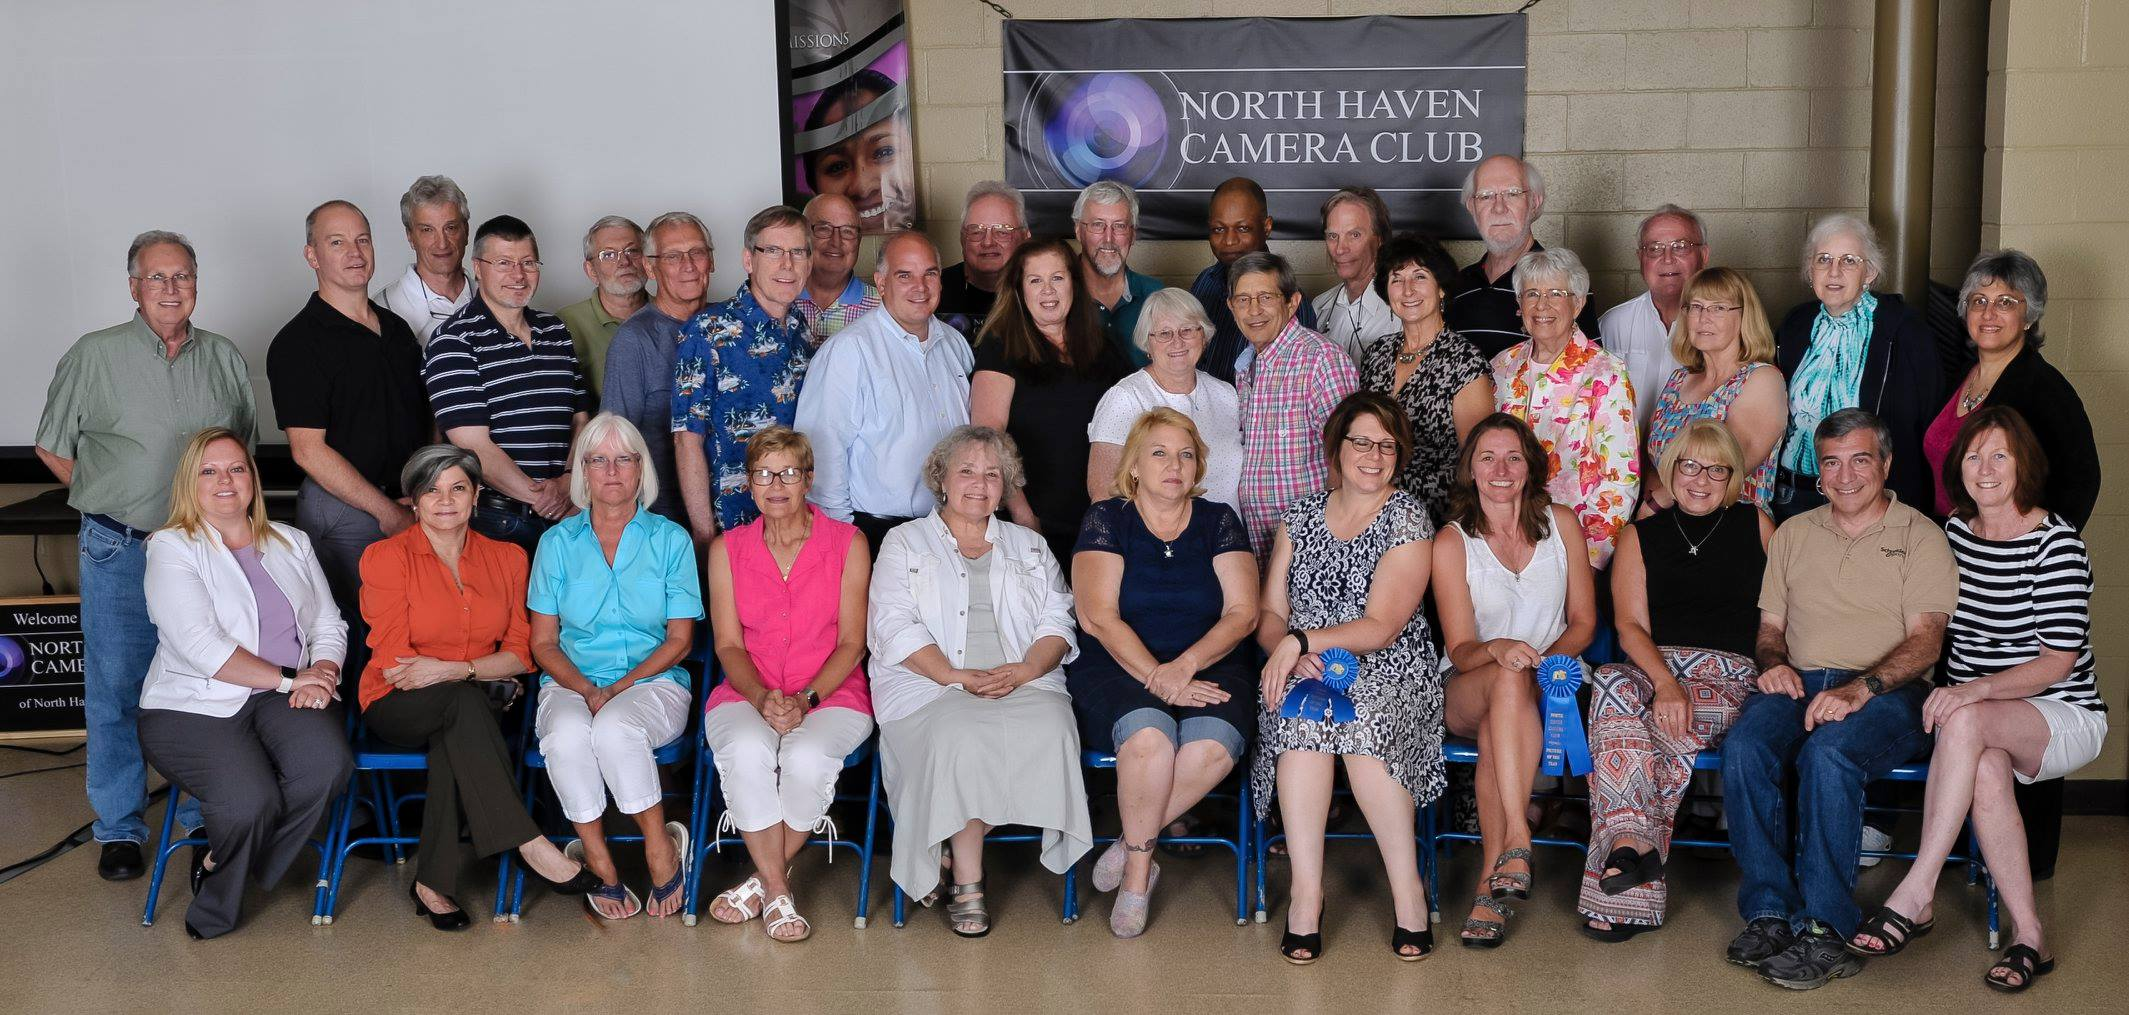 2016 North Haven Camera Club Members - 78 strong